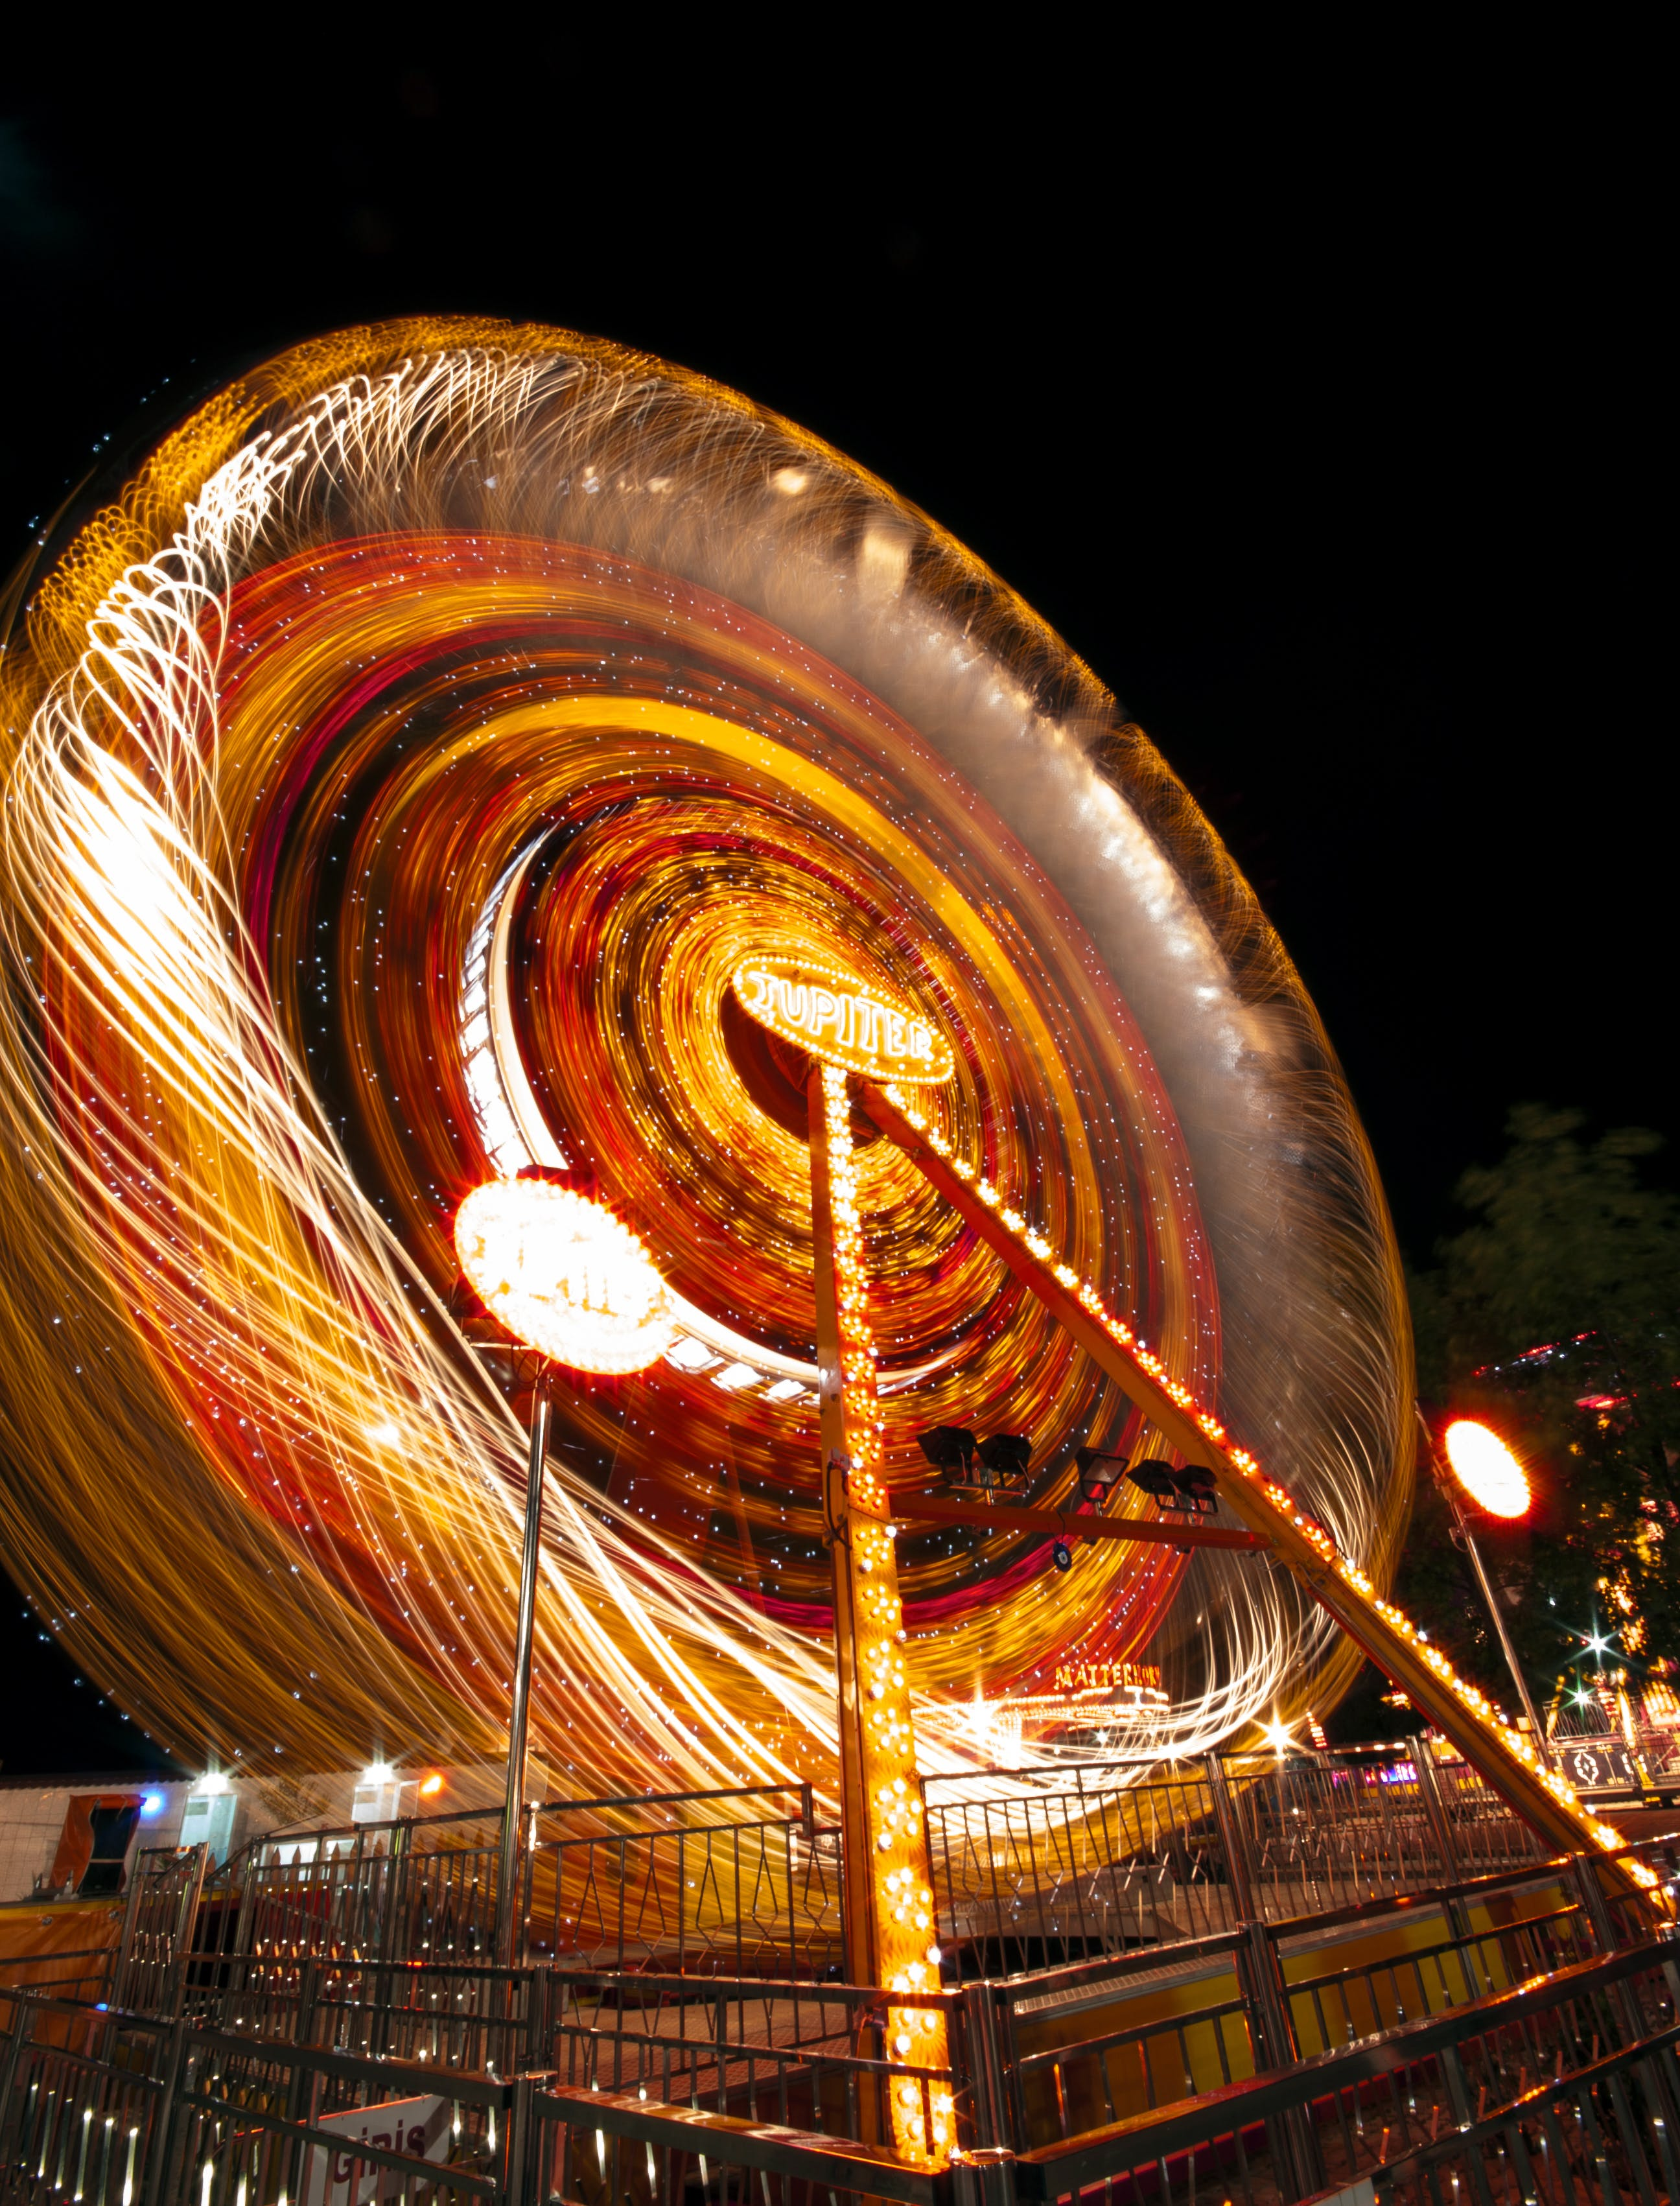 Photograph of a Lighted Ferris Wheel